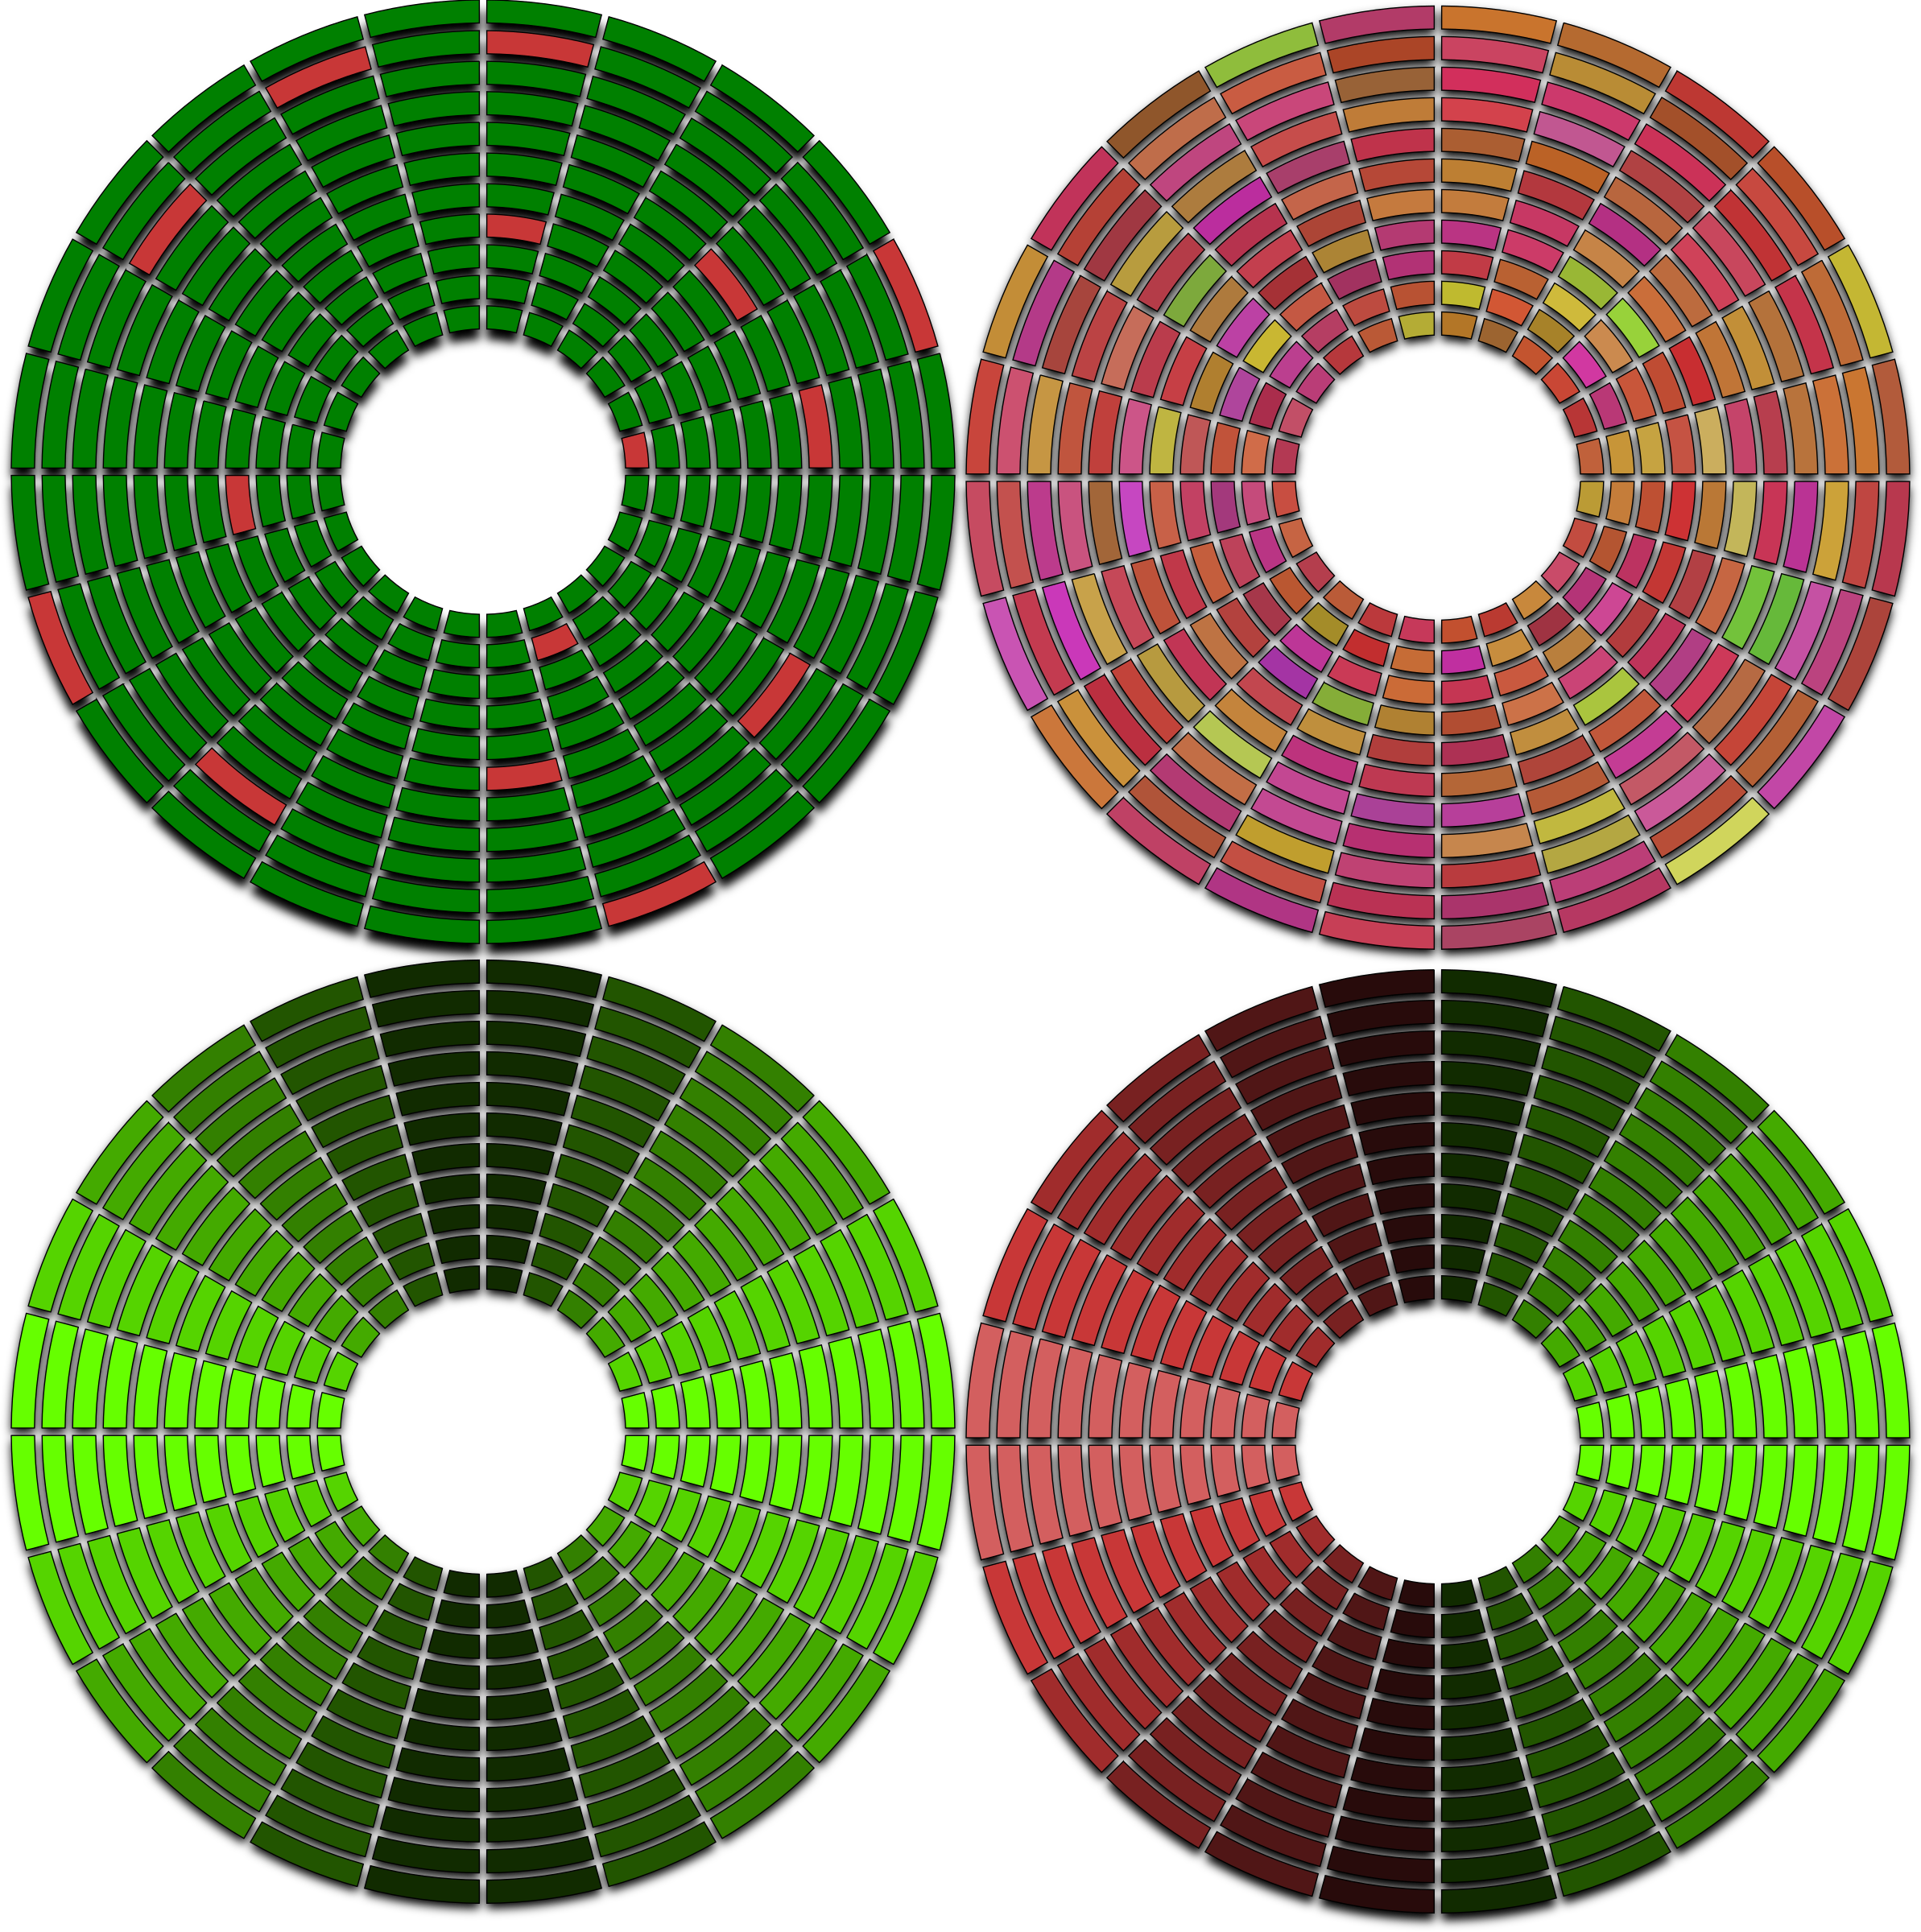 abstract disc circle hdd defragmented fragmented with bad sectors by Keistutis